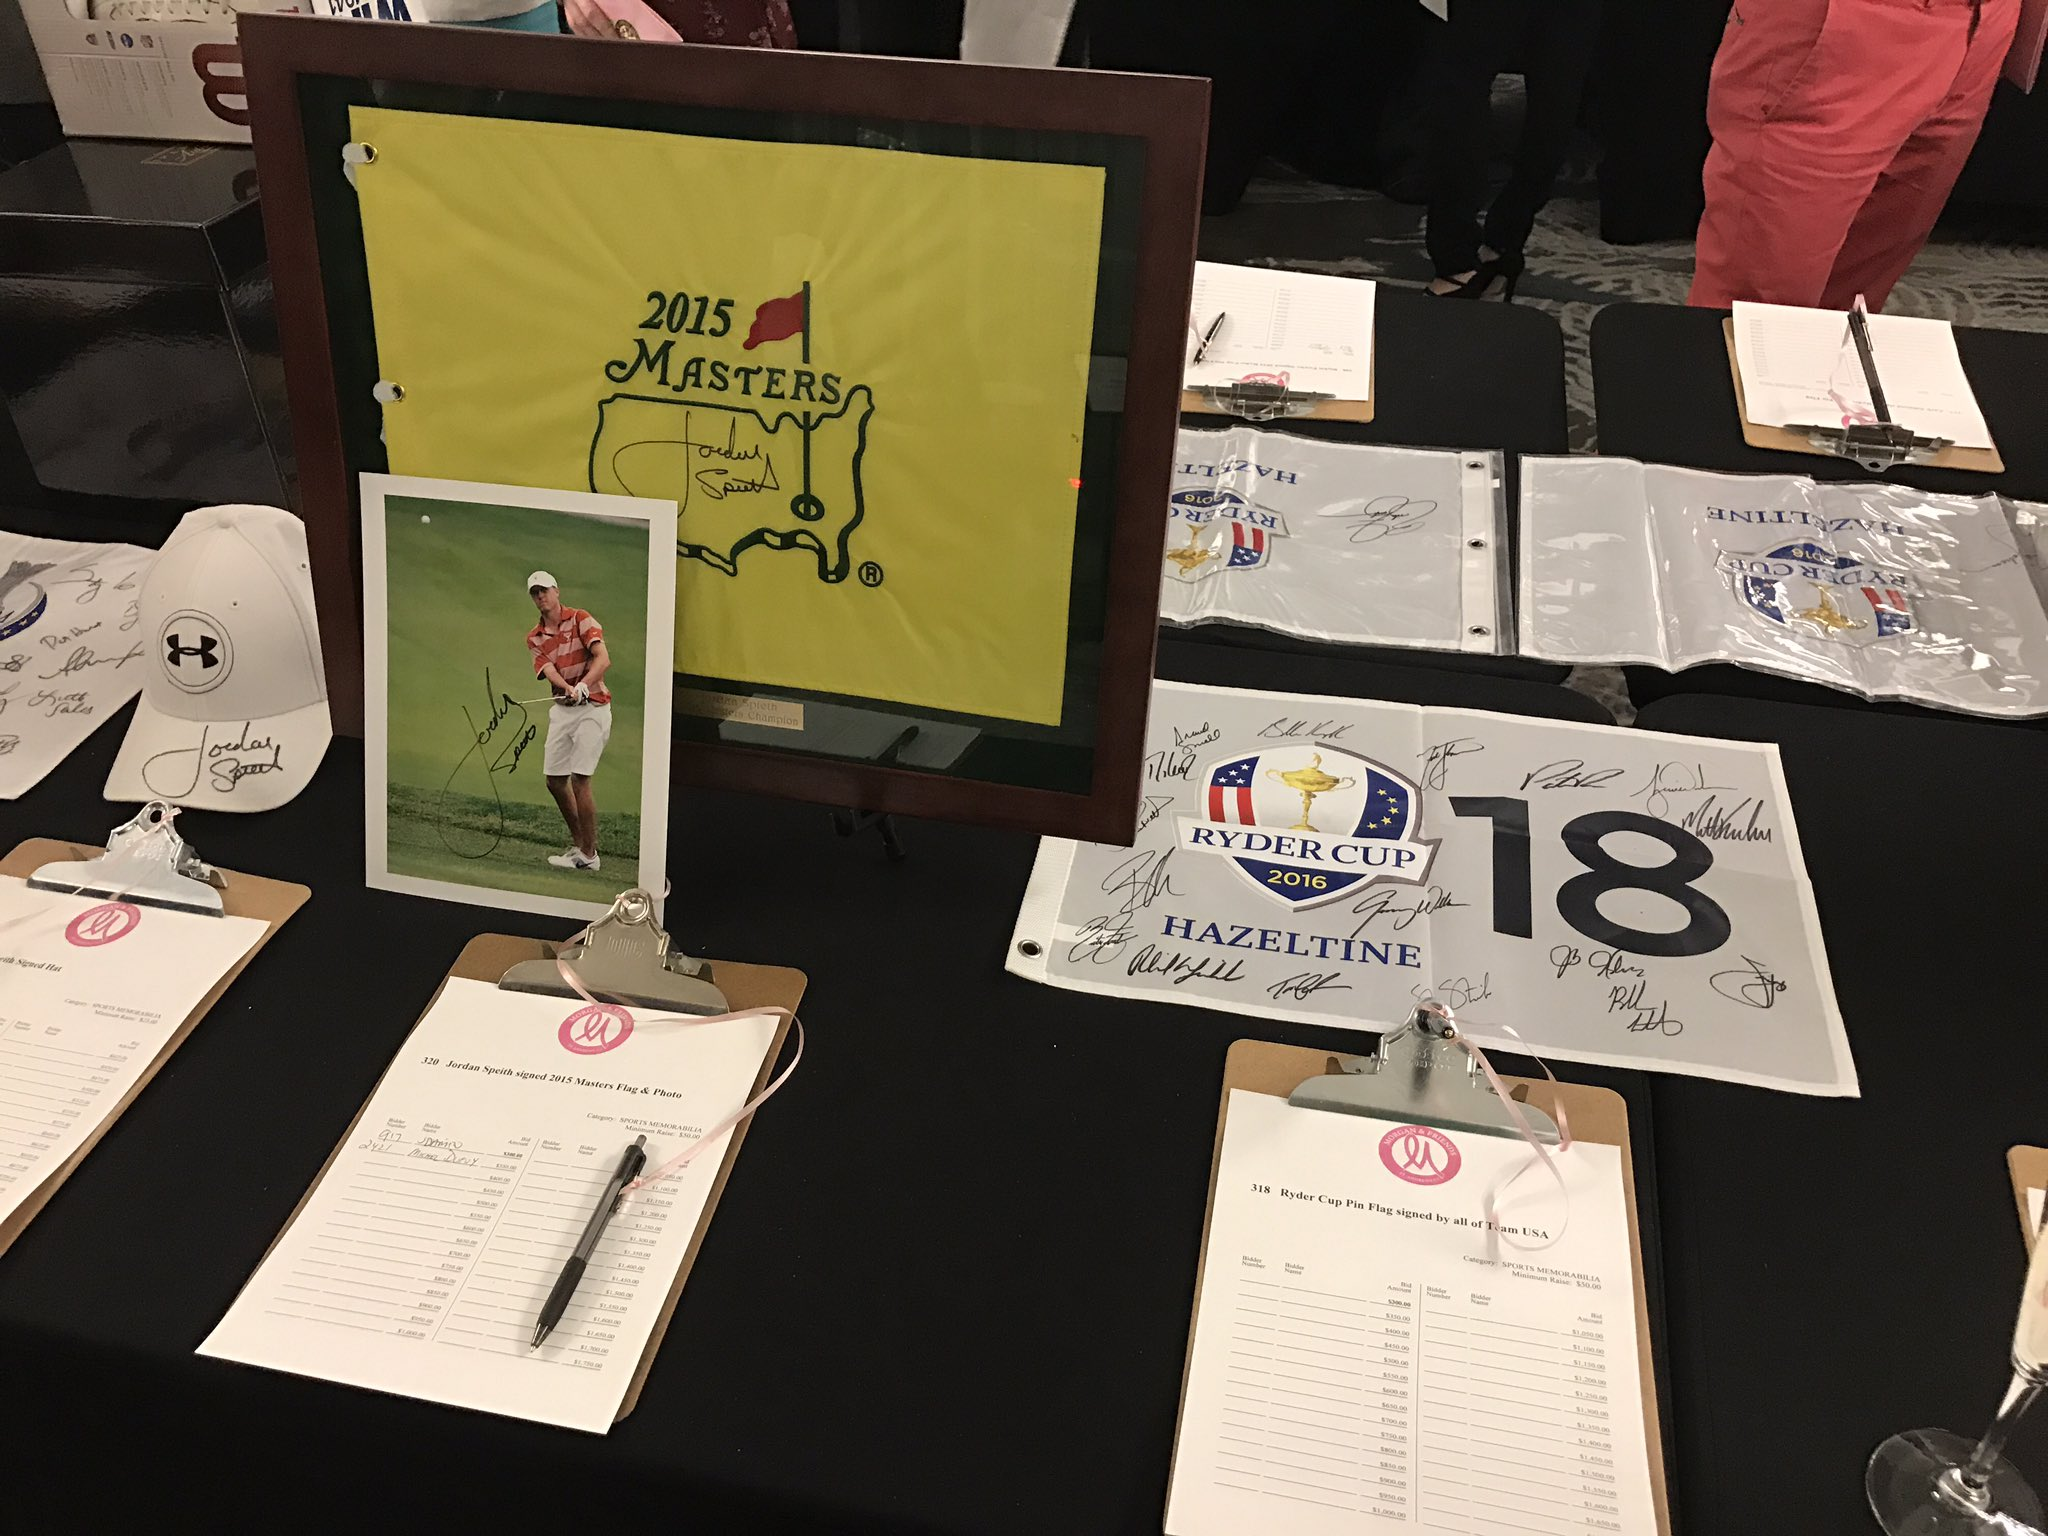 Just a few goodies you can bid on at @mpressel's silent auction 👌 @TheMasters @RyderCupUSA @JordanSpieth #MorganandFriends17 https://t.co/yQJeCIzA12